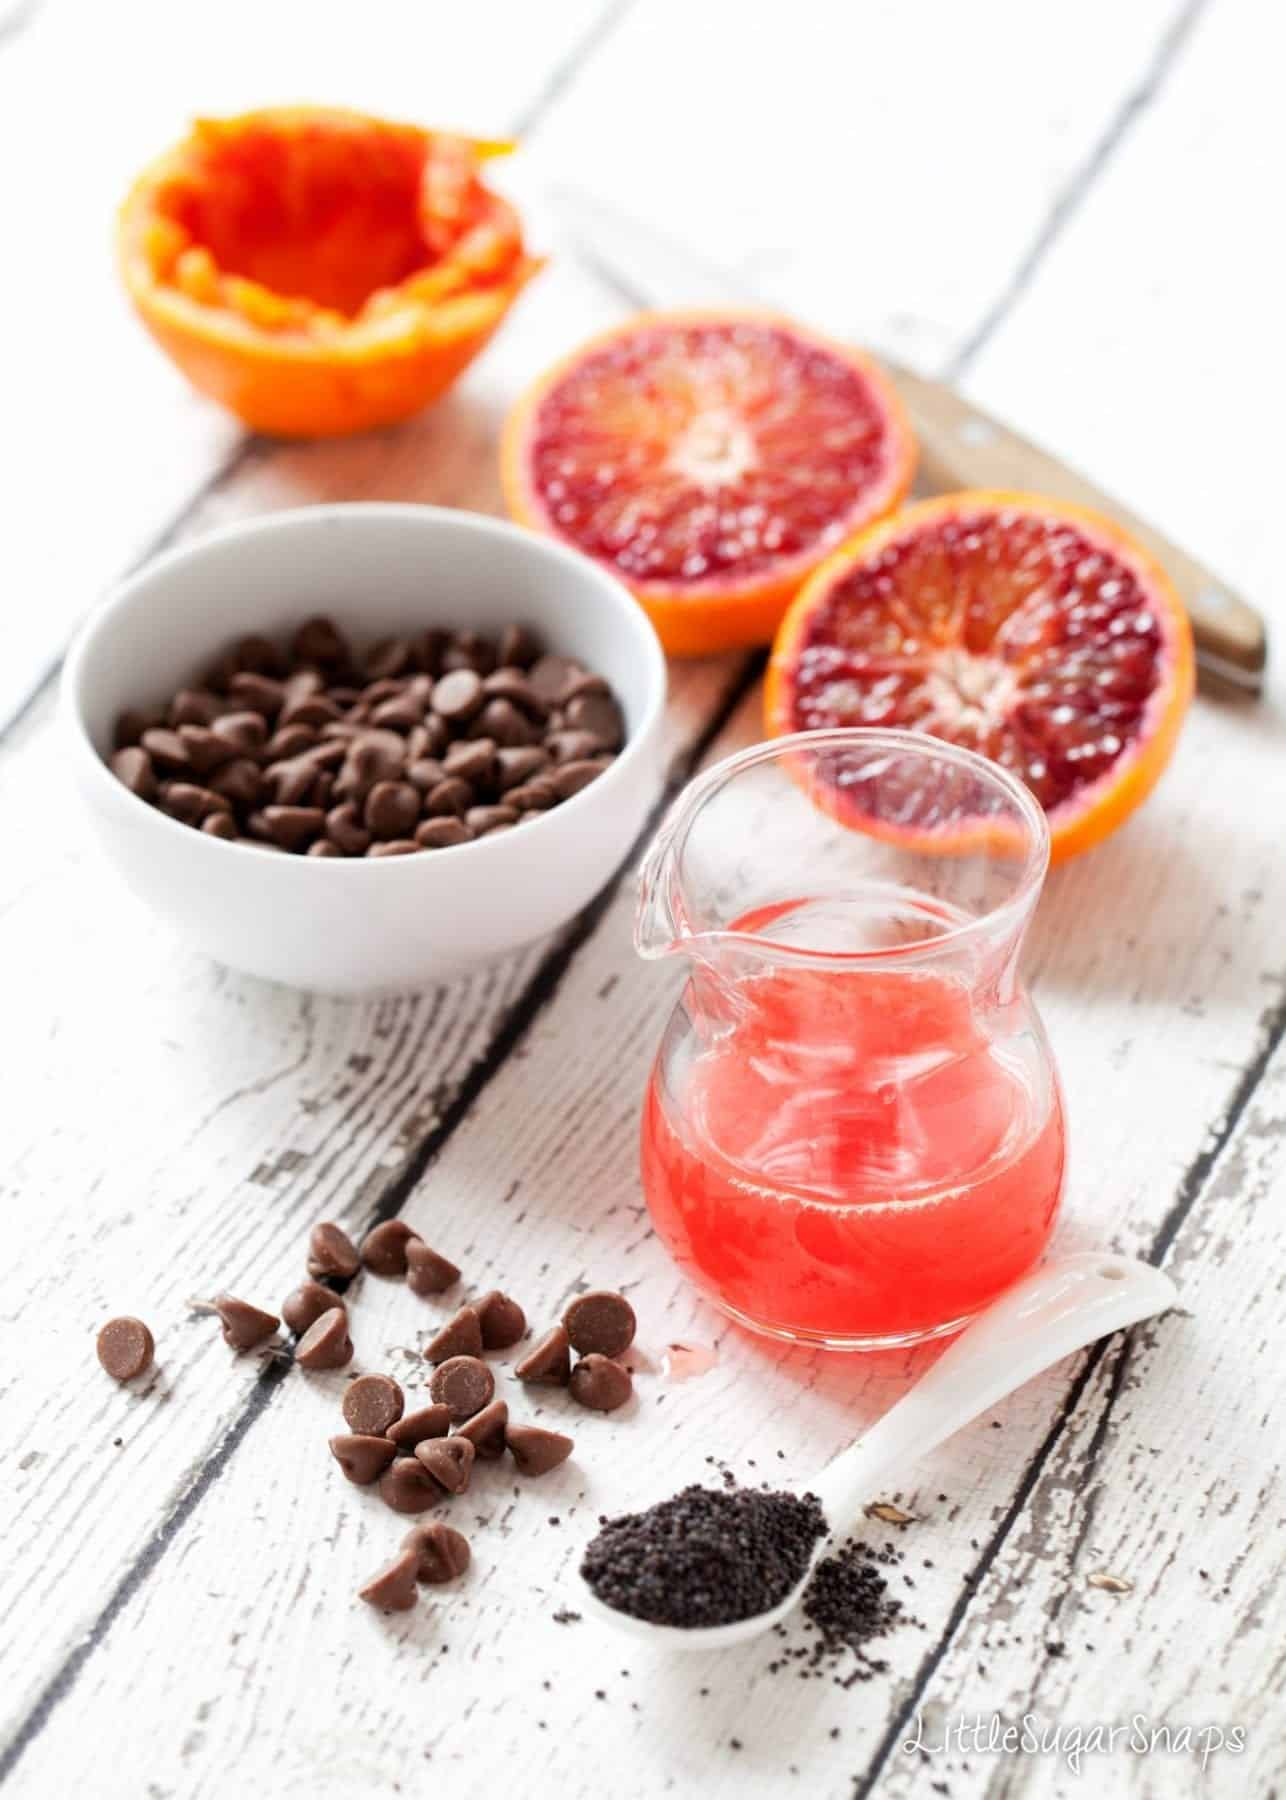 Ingredients: blood ranges & juice, chocolate chips and chia seeds